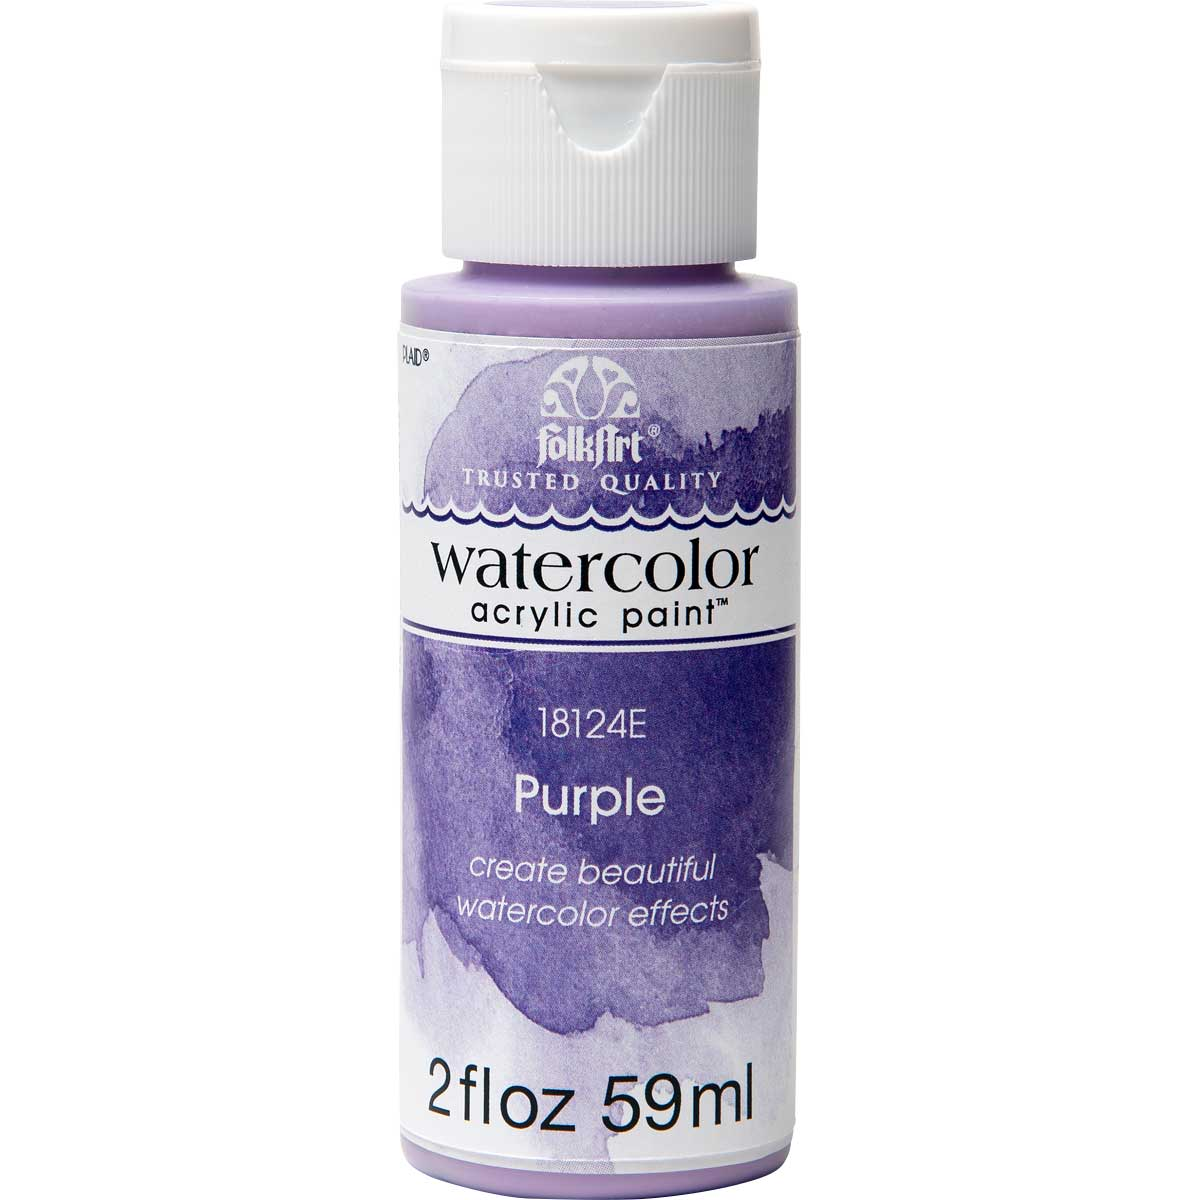 FolkArt ® Watercolor Acrylic Paint™ - Purple, 2 oz. - 18124